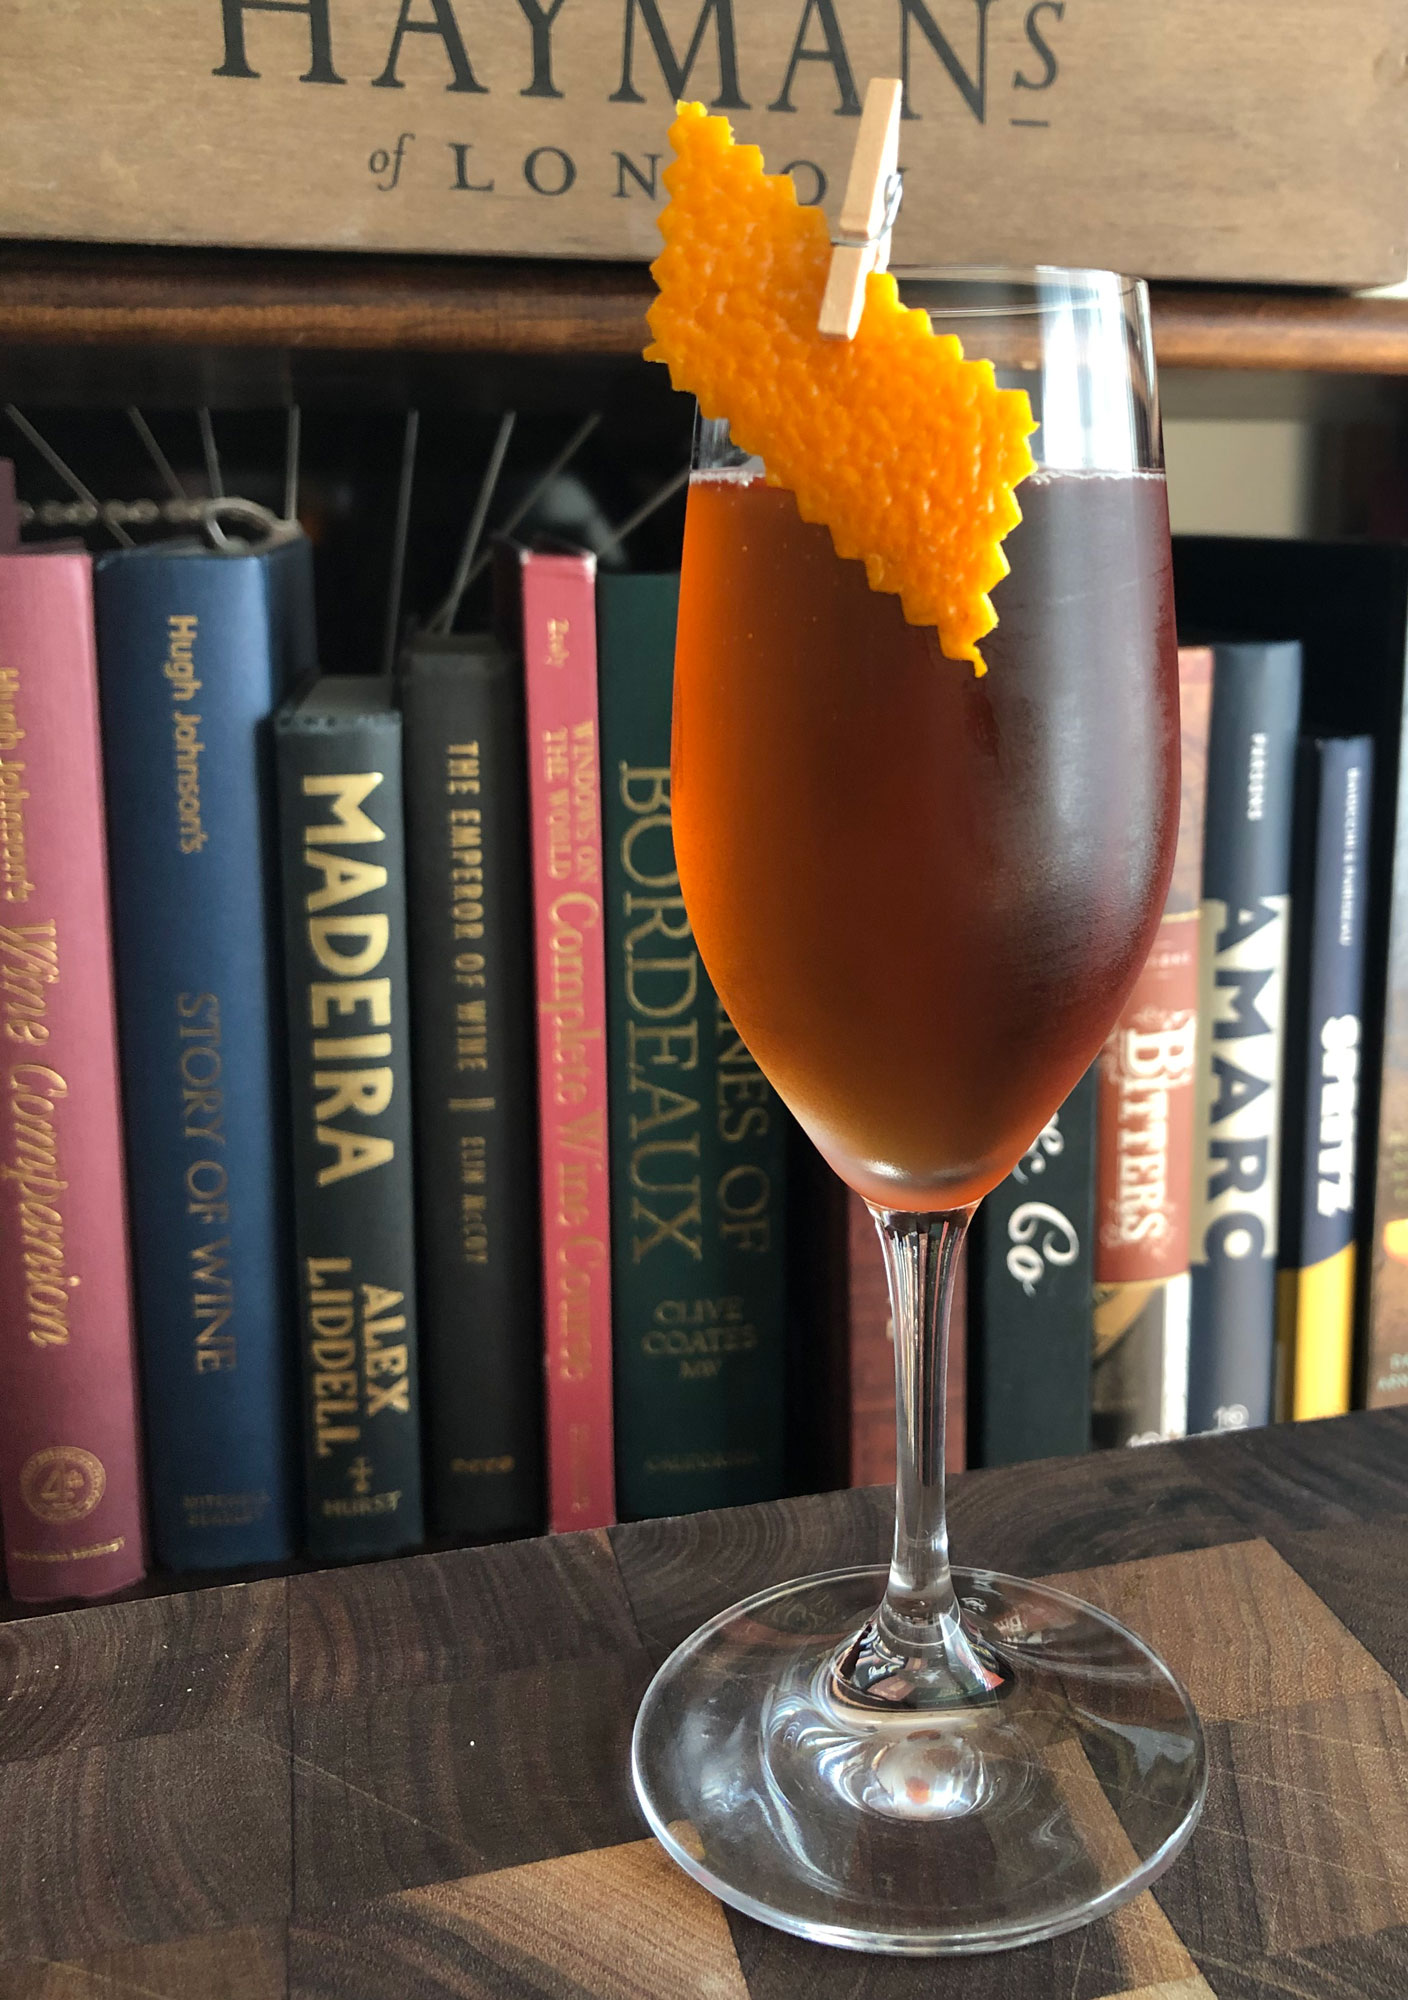 An example of the Vintner's Whimsy, the mixed drink (cocktail) featuring Mattei Cap Corse Rouge Quinquina, Cocchi Vermouth di Torino, and sparkling wine; photo by Lee Edwards